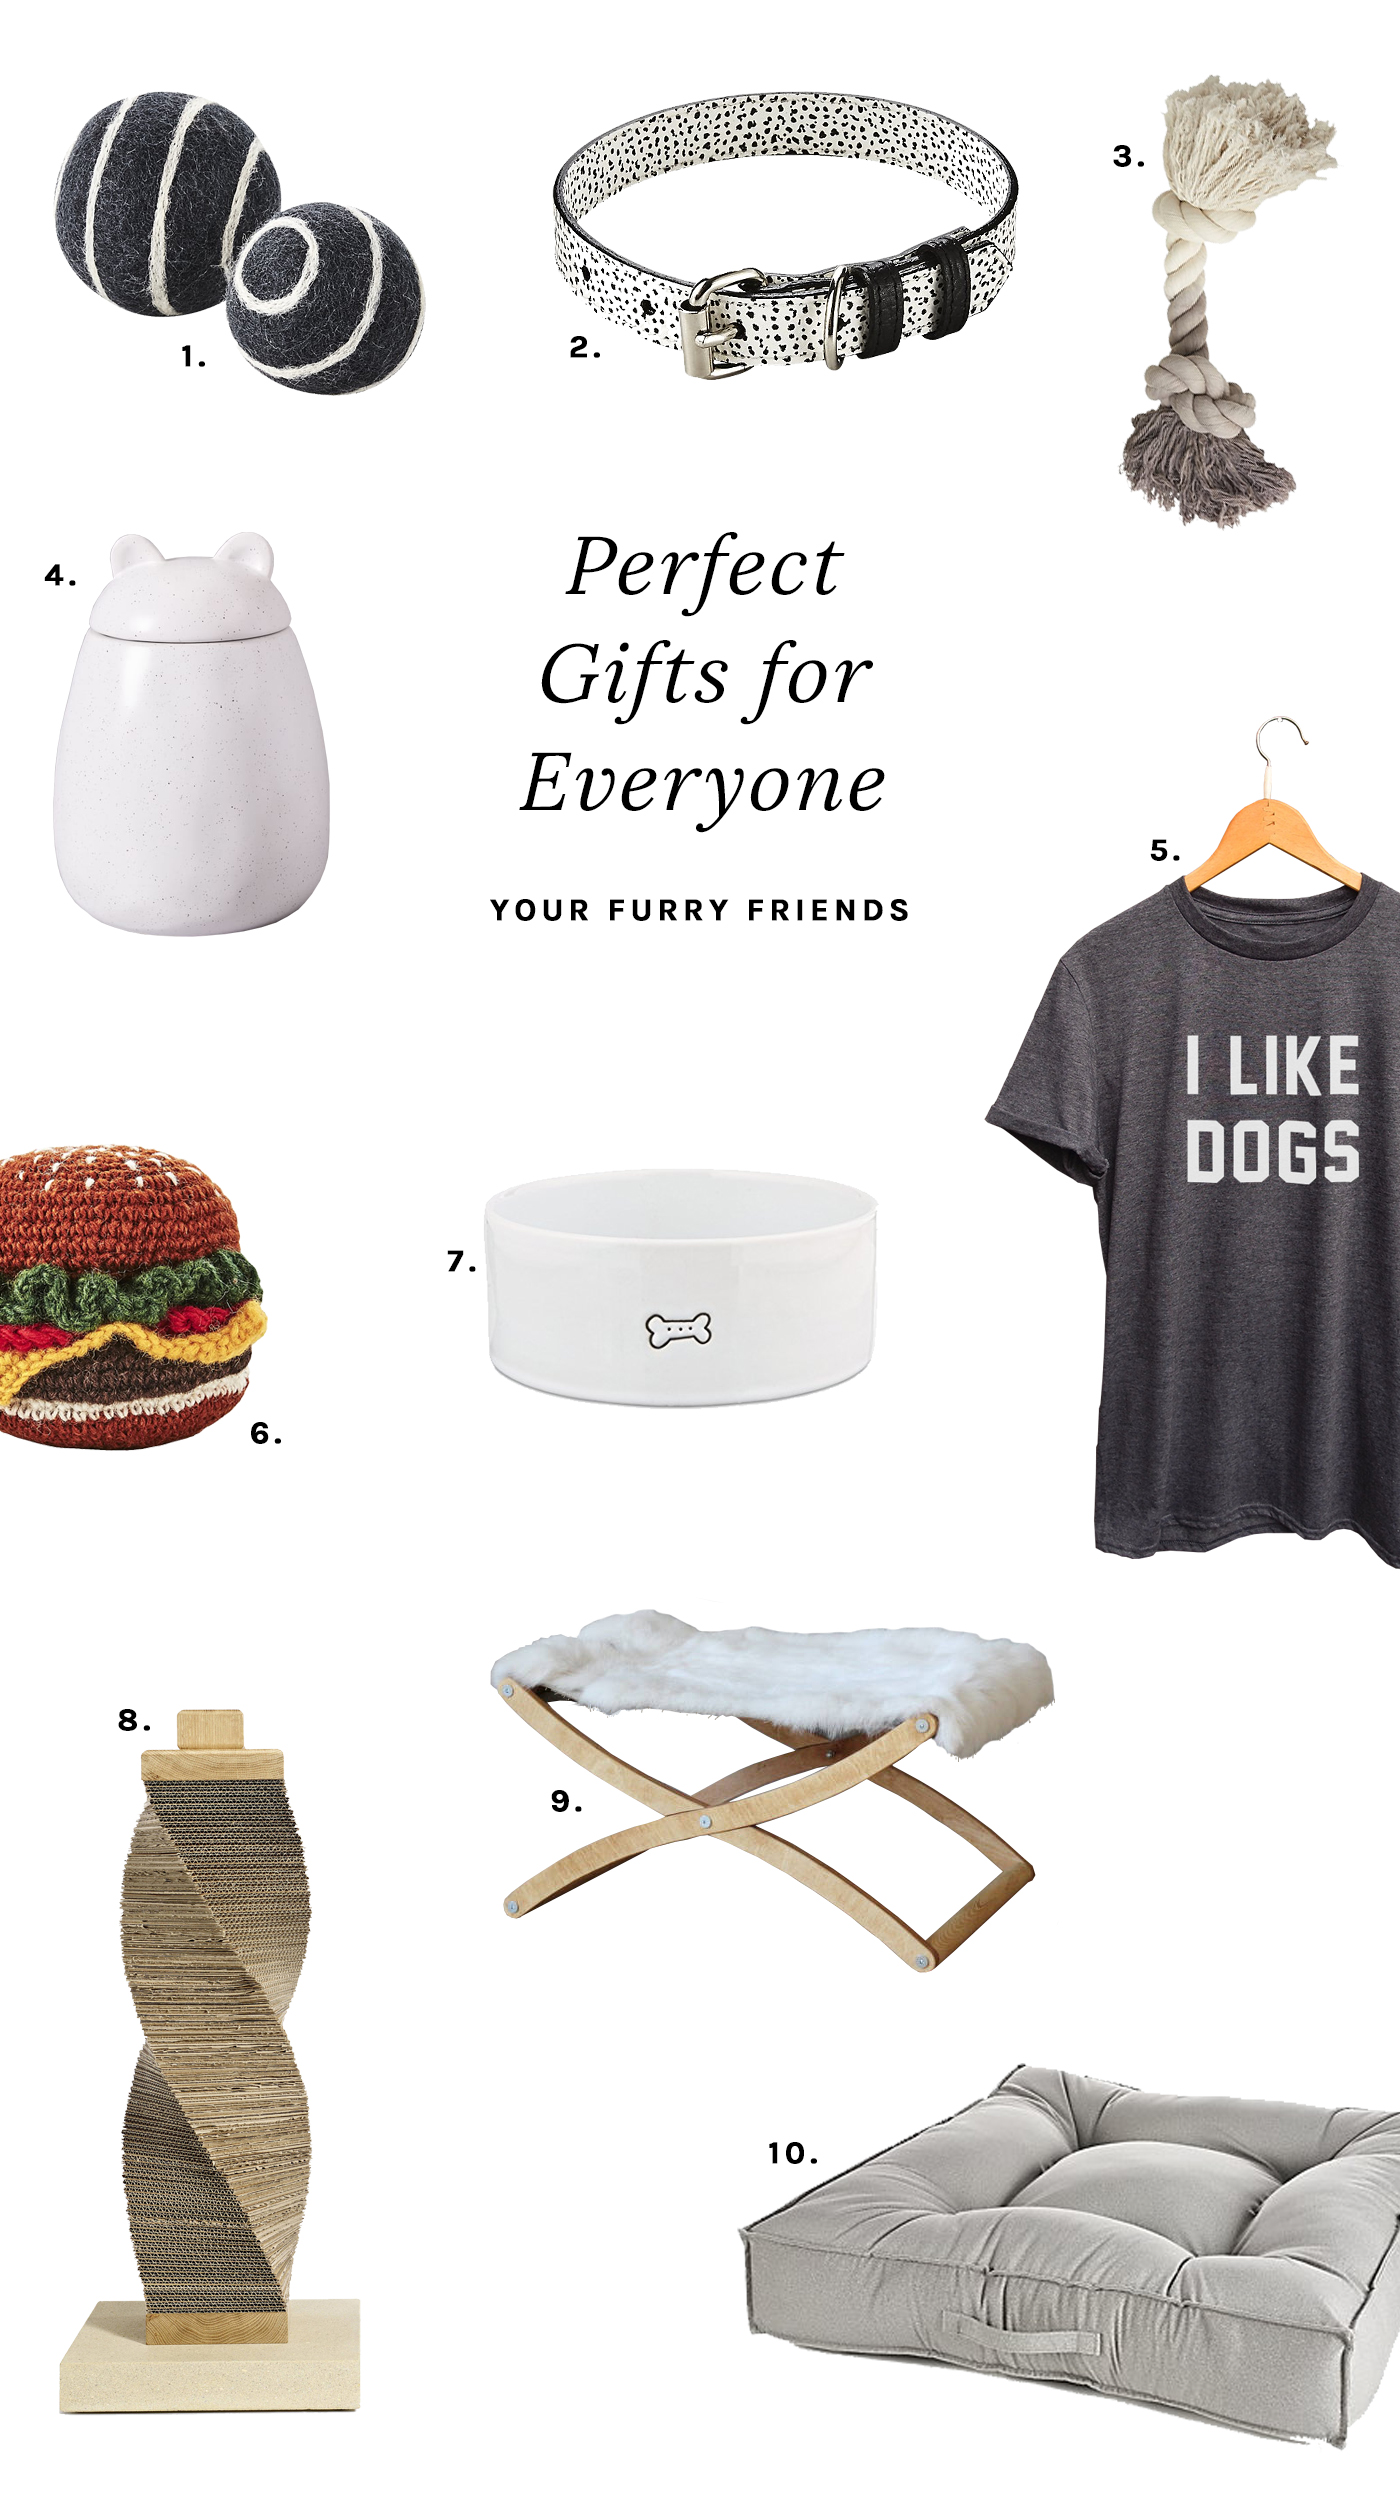 Perfect gifts for stylish and modern pets. Part of a well-curated gift guide for everyone in your life.